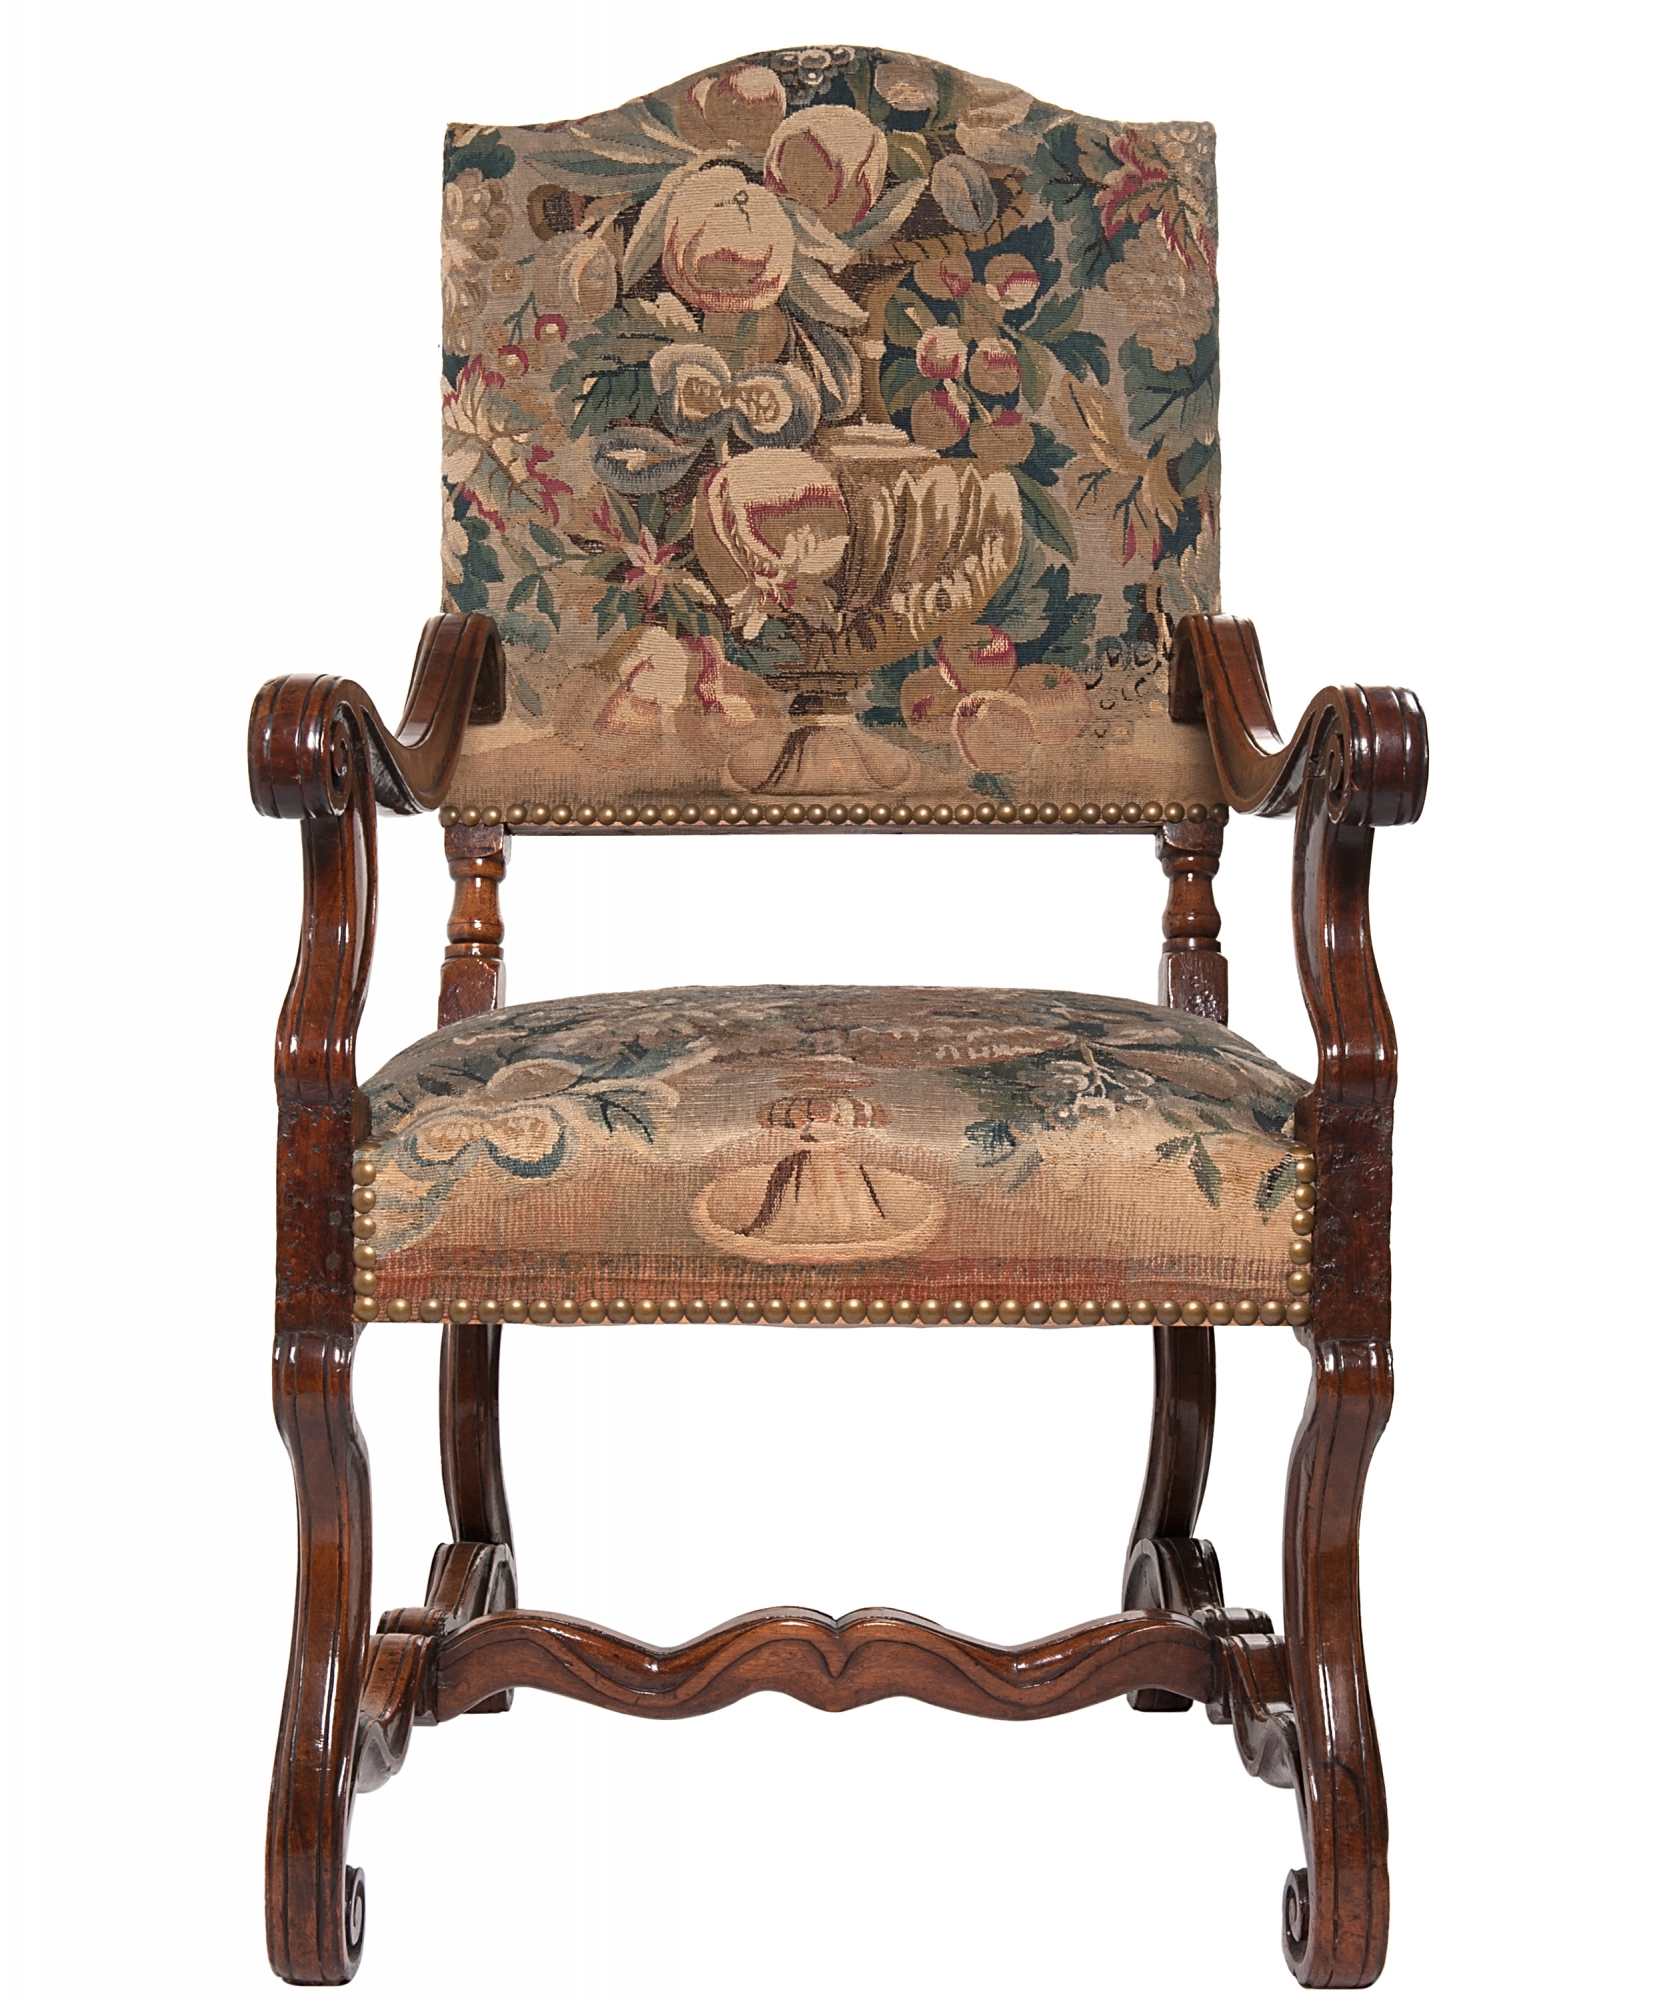 Louis The 14th Furniture A Good Pair Of Gobelin Upholstered Walnut Louis Xiv Arm